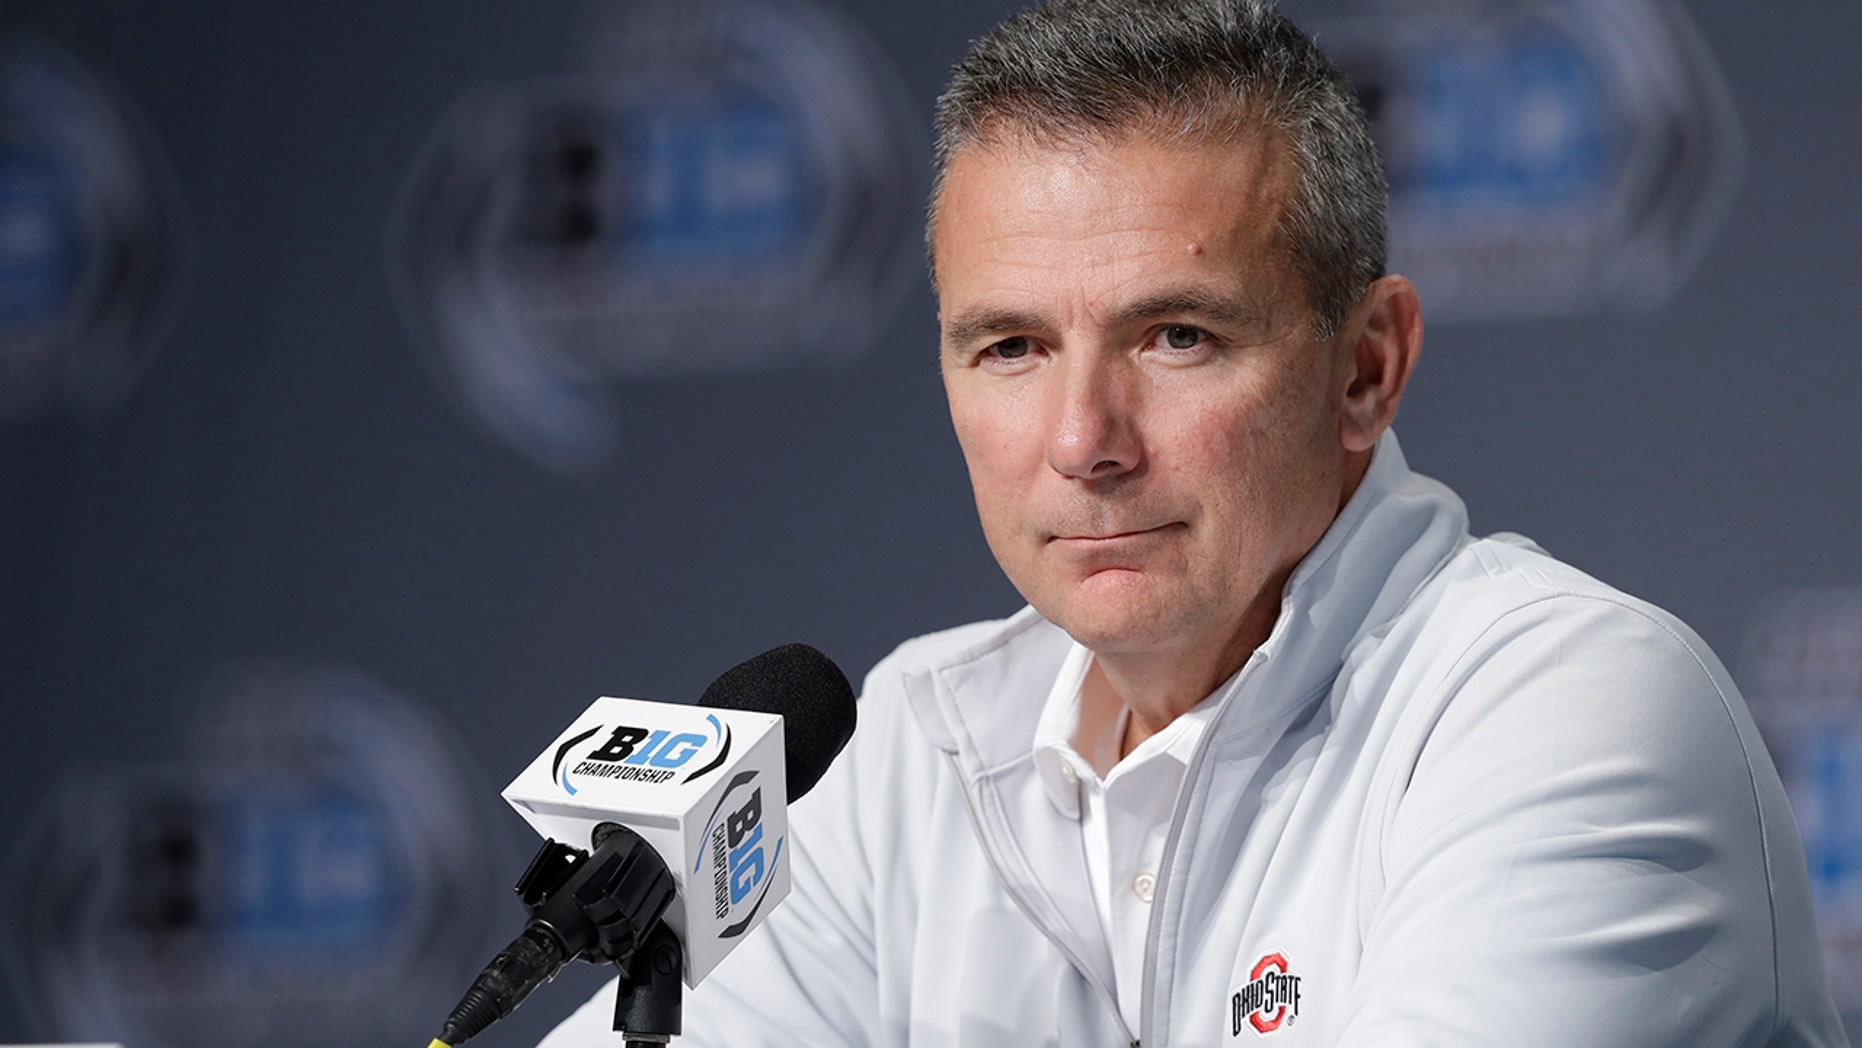 Ohio State head coach Urban Meyer will step down after the Rose Bowl